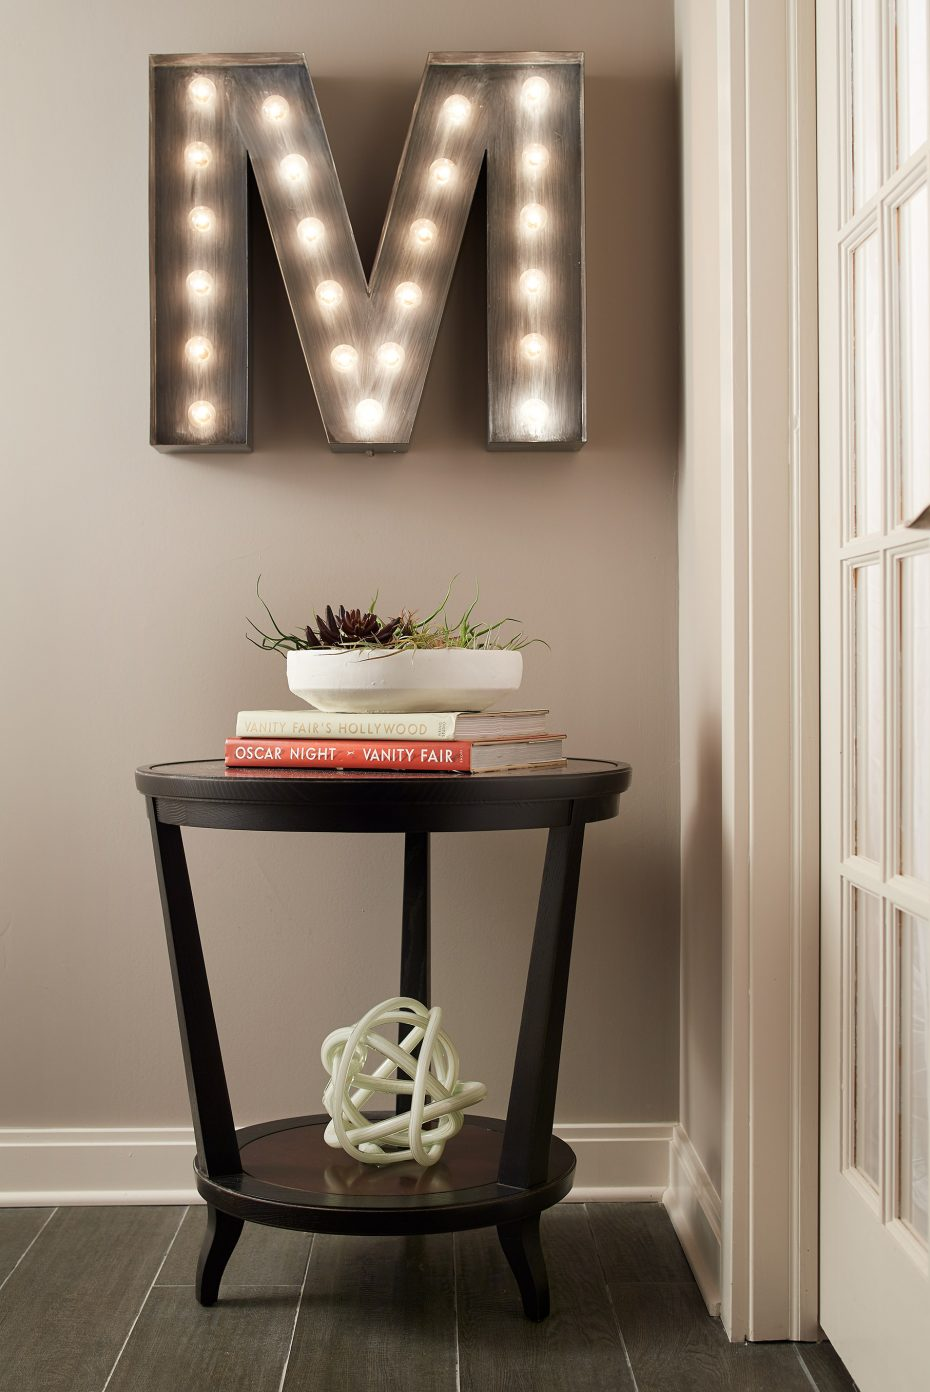 Large letter M in lights above a Hickory Chair wood table